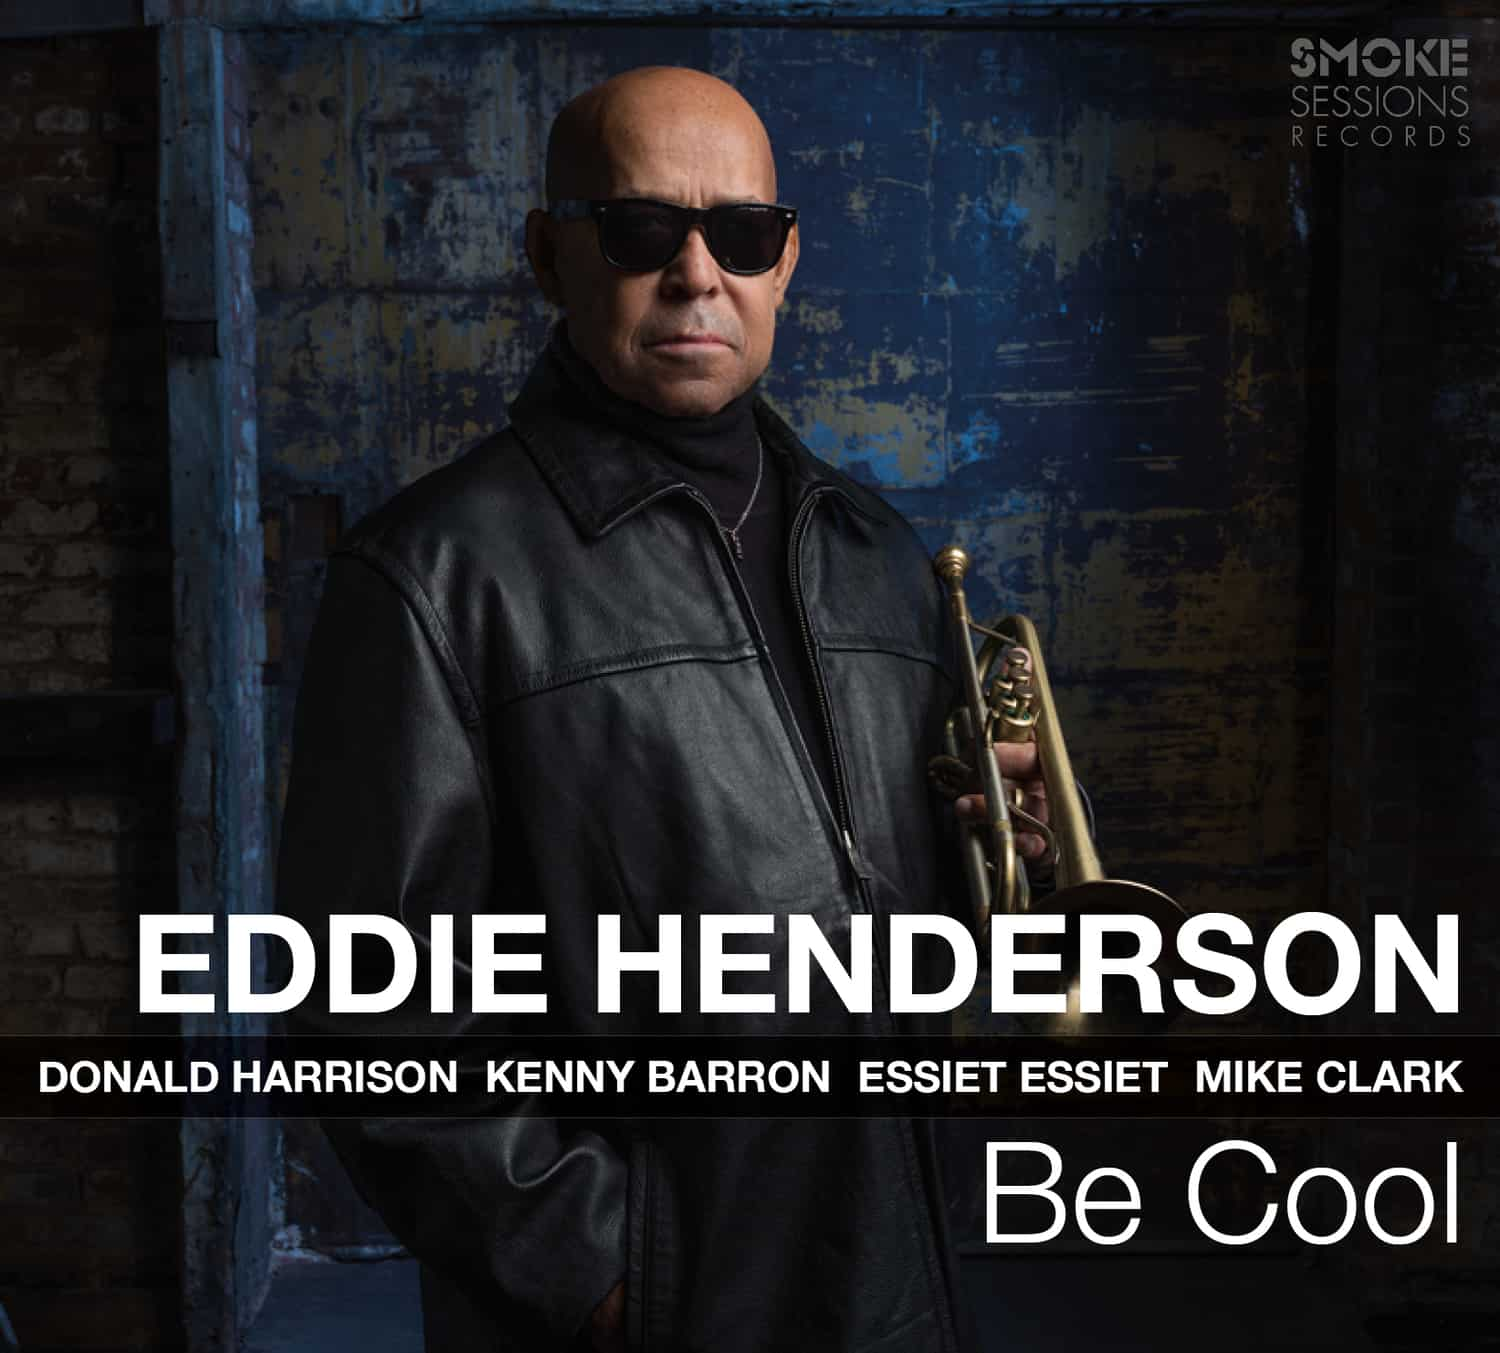 Eddie Henderson BE COOL